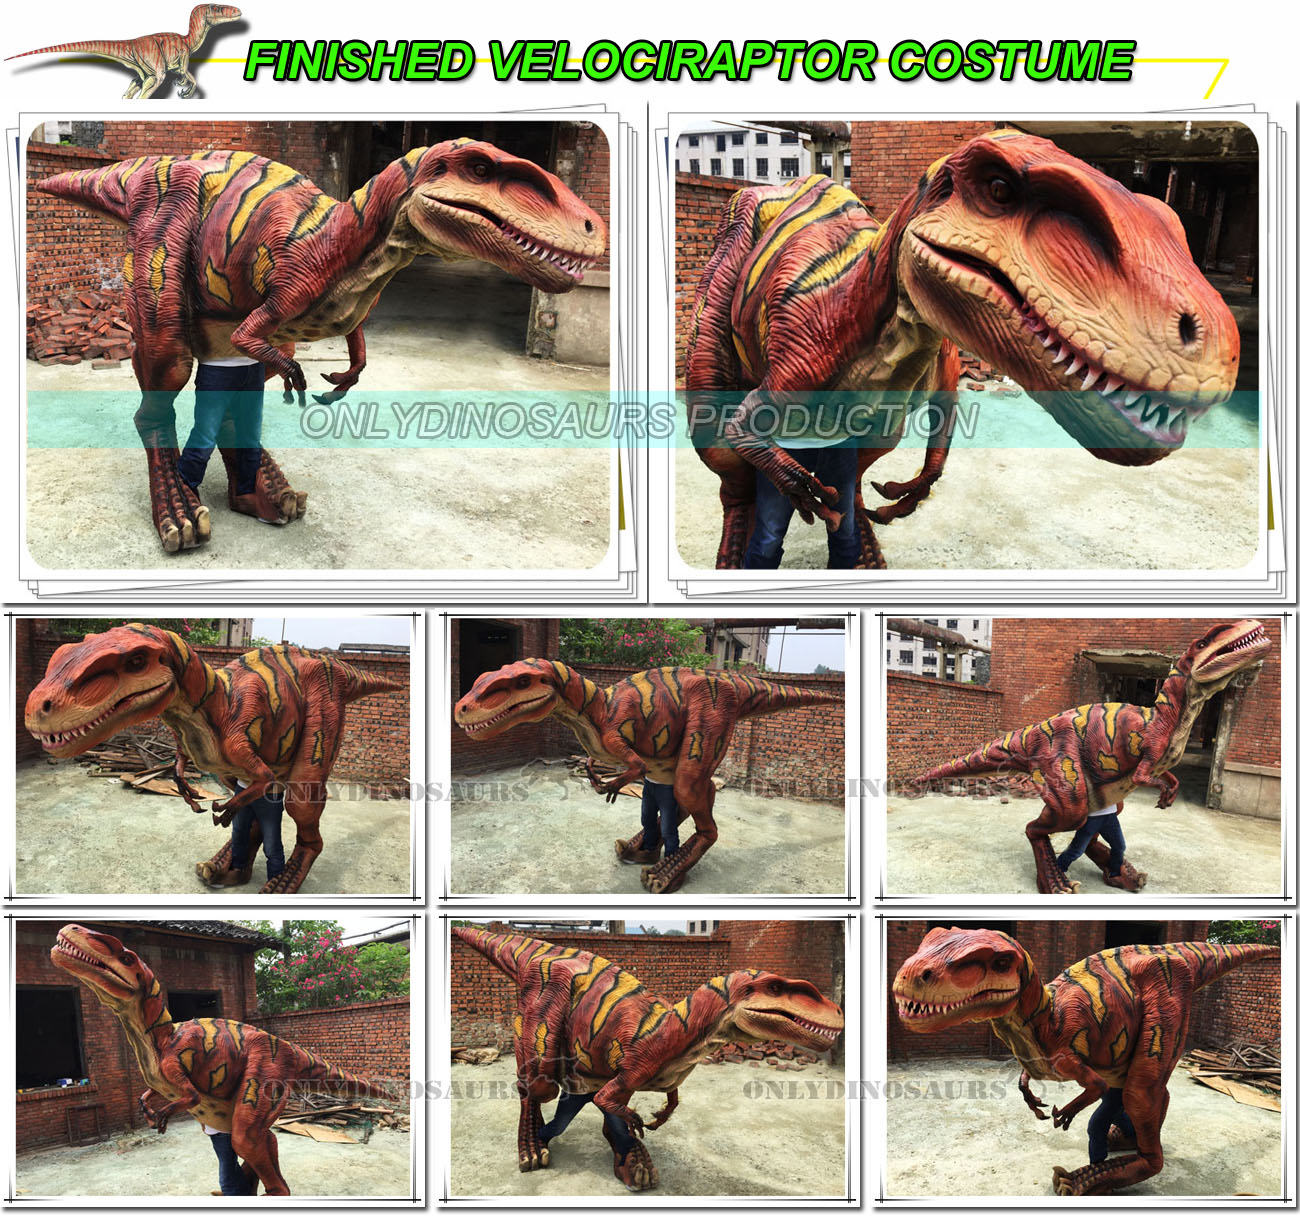 Finished VelociRaptor Costume